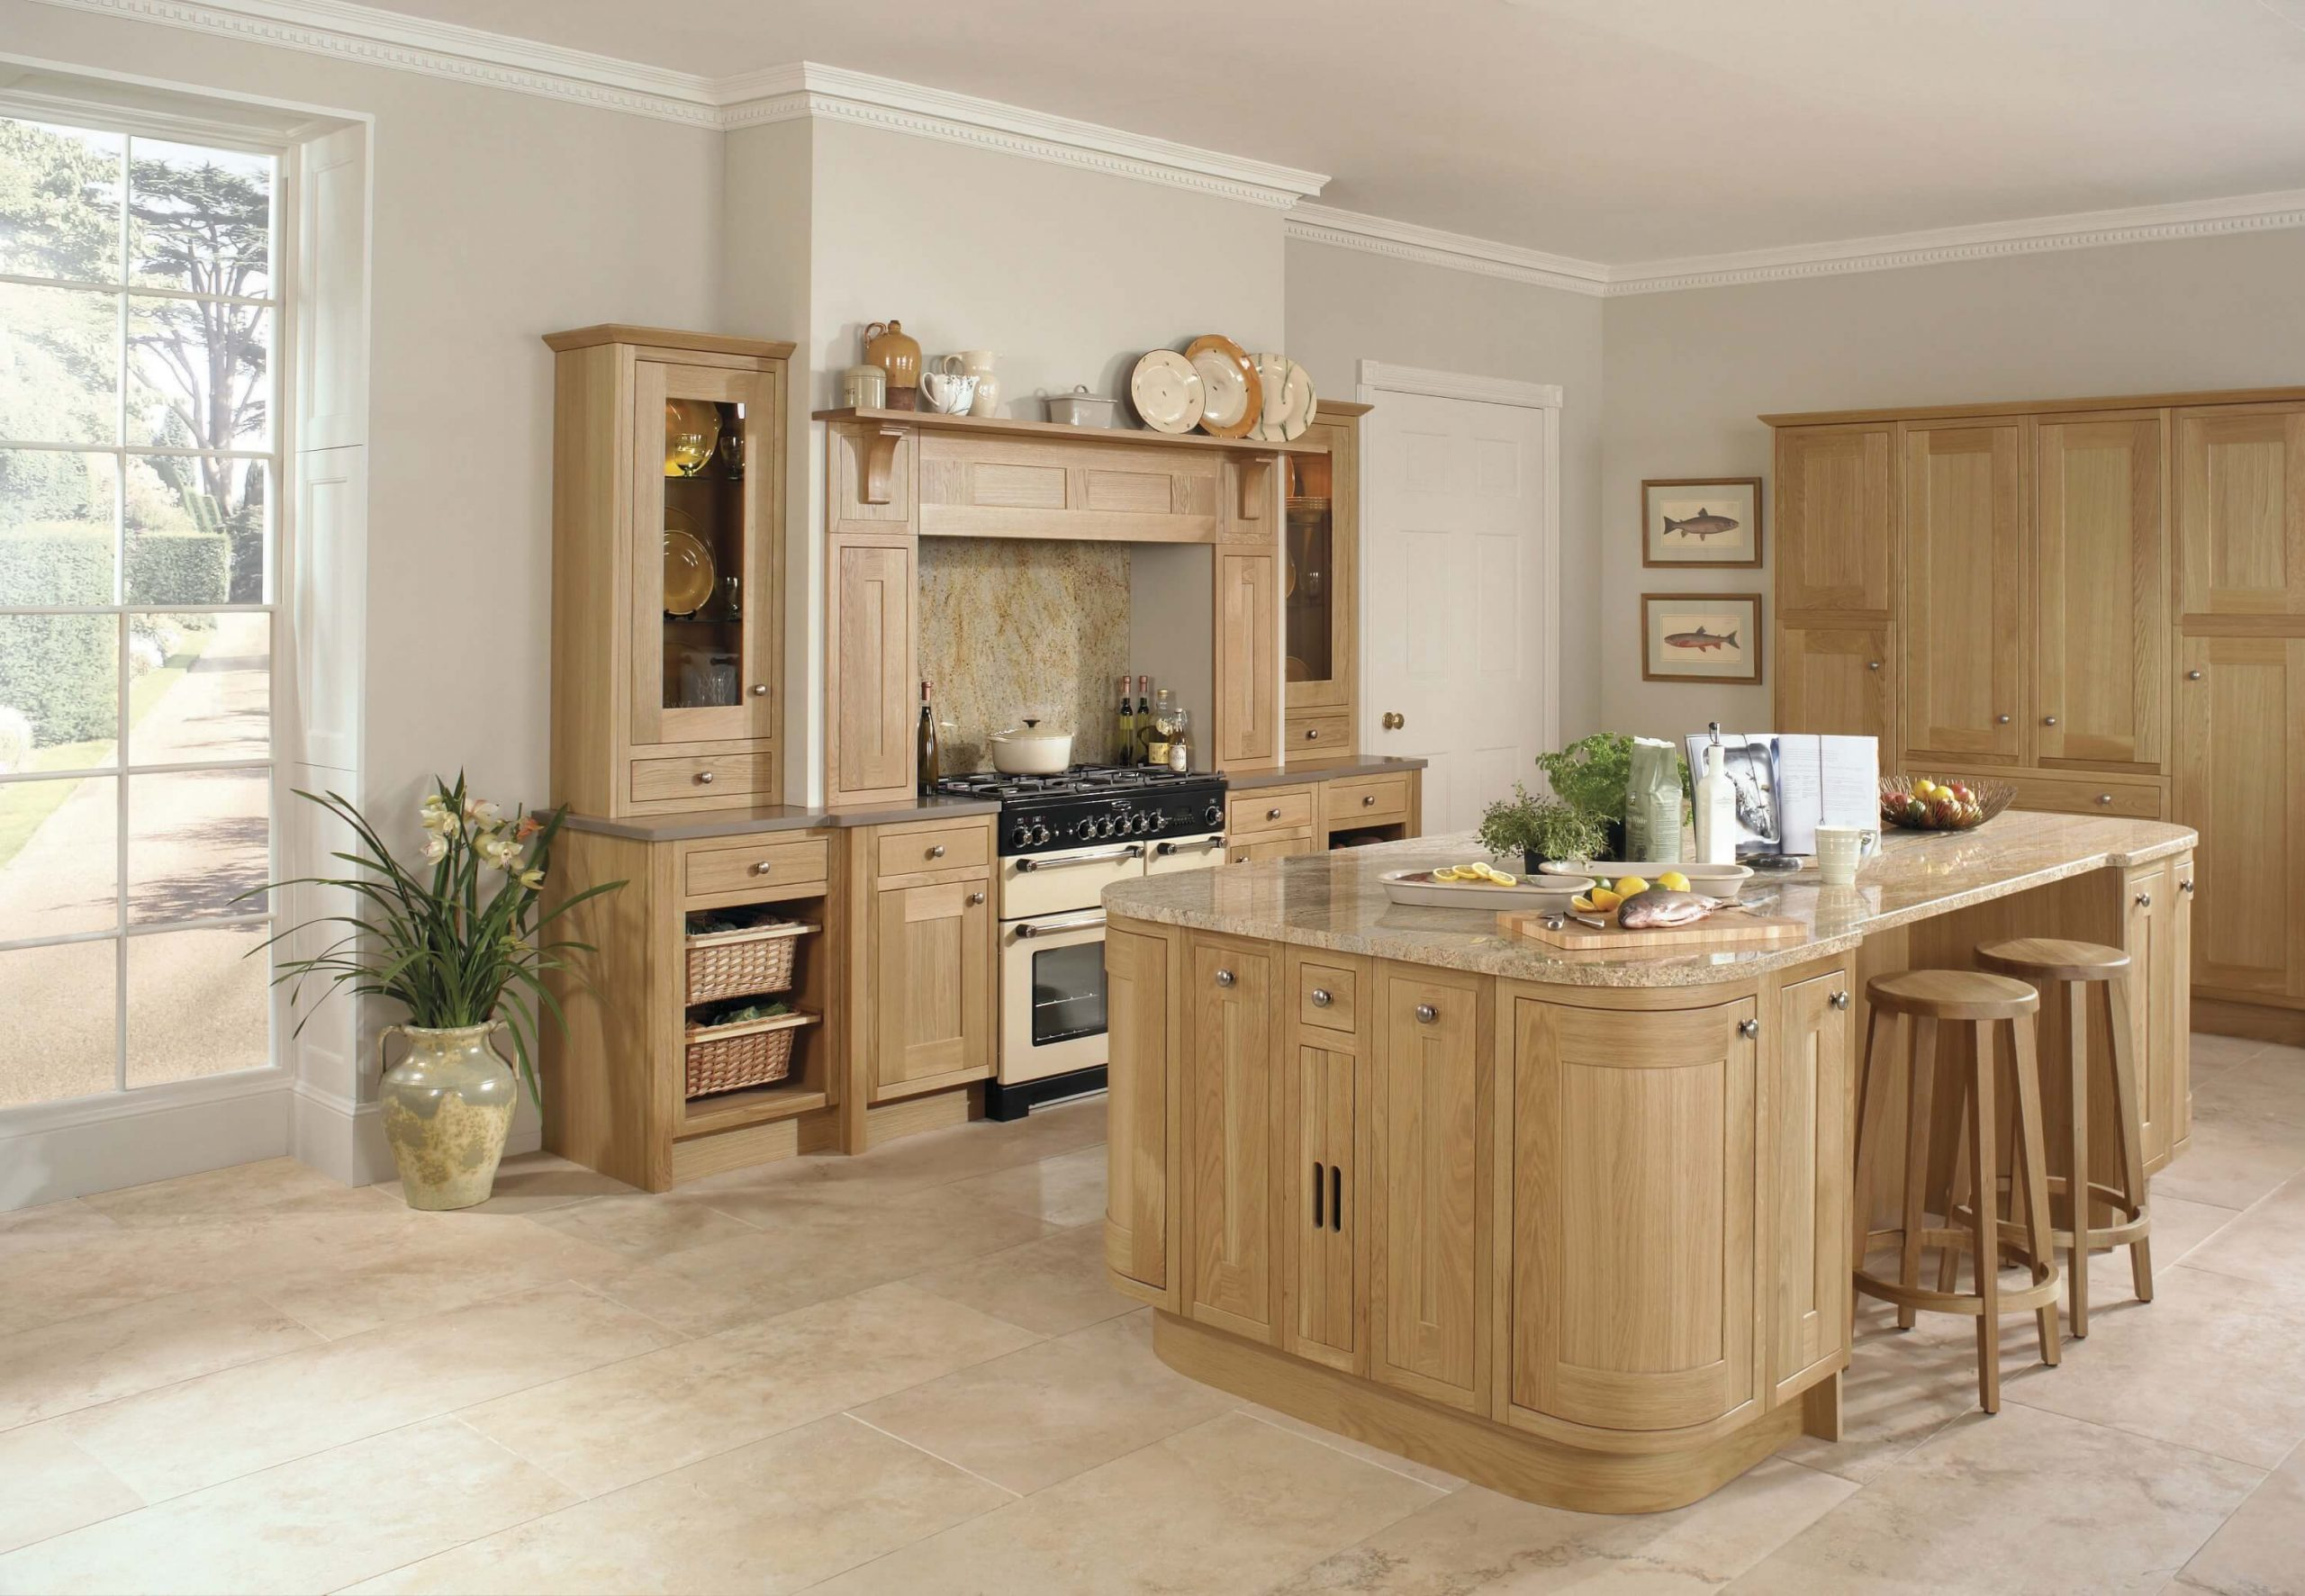 Petworth Timber - Noble Kitchens (1)